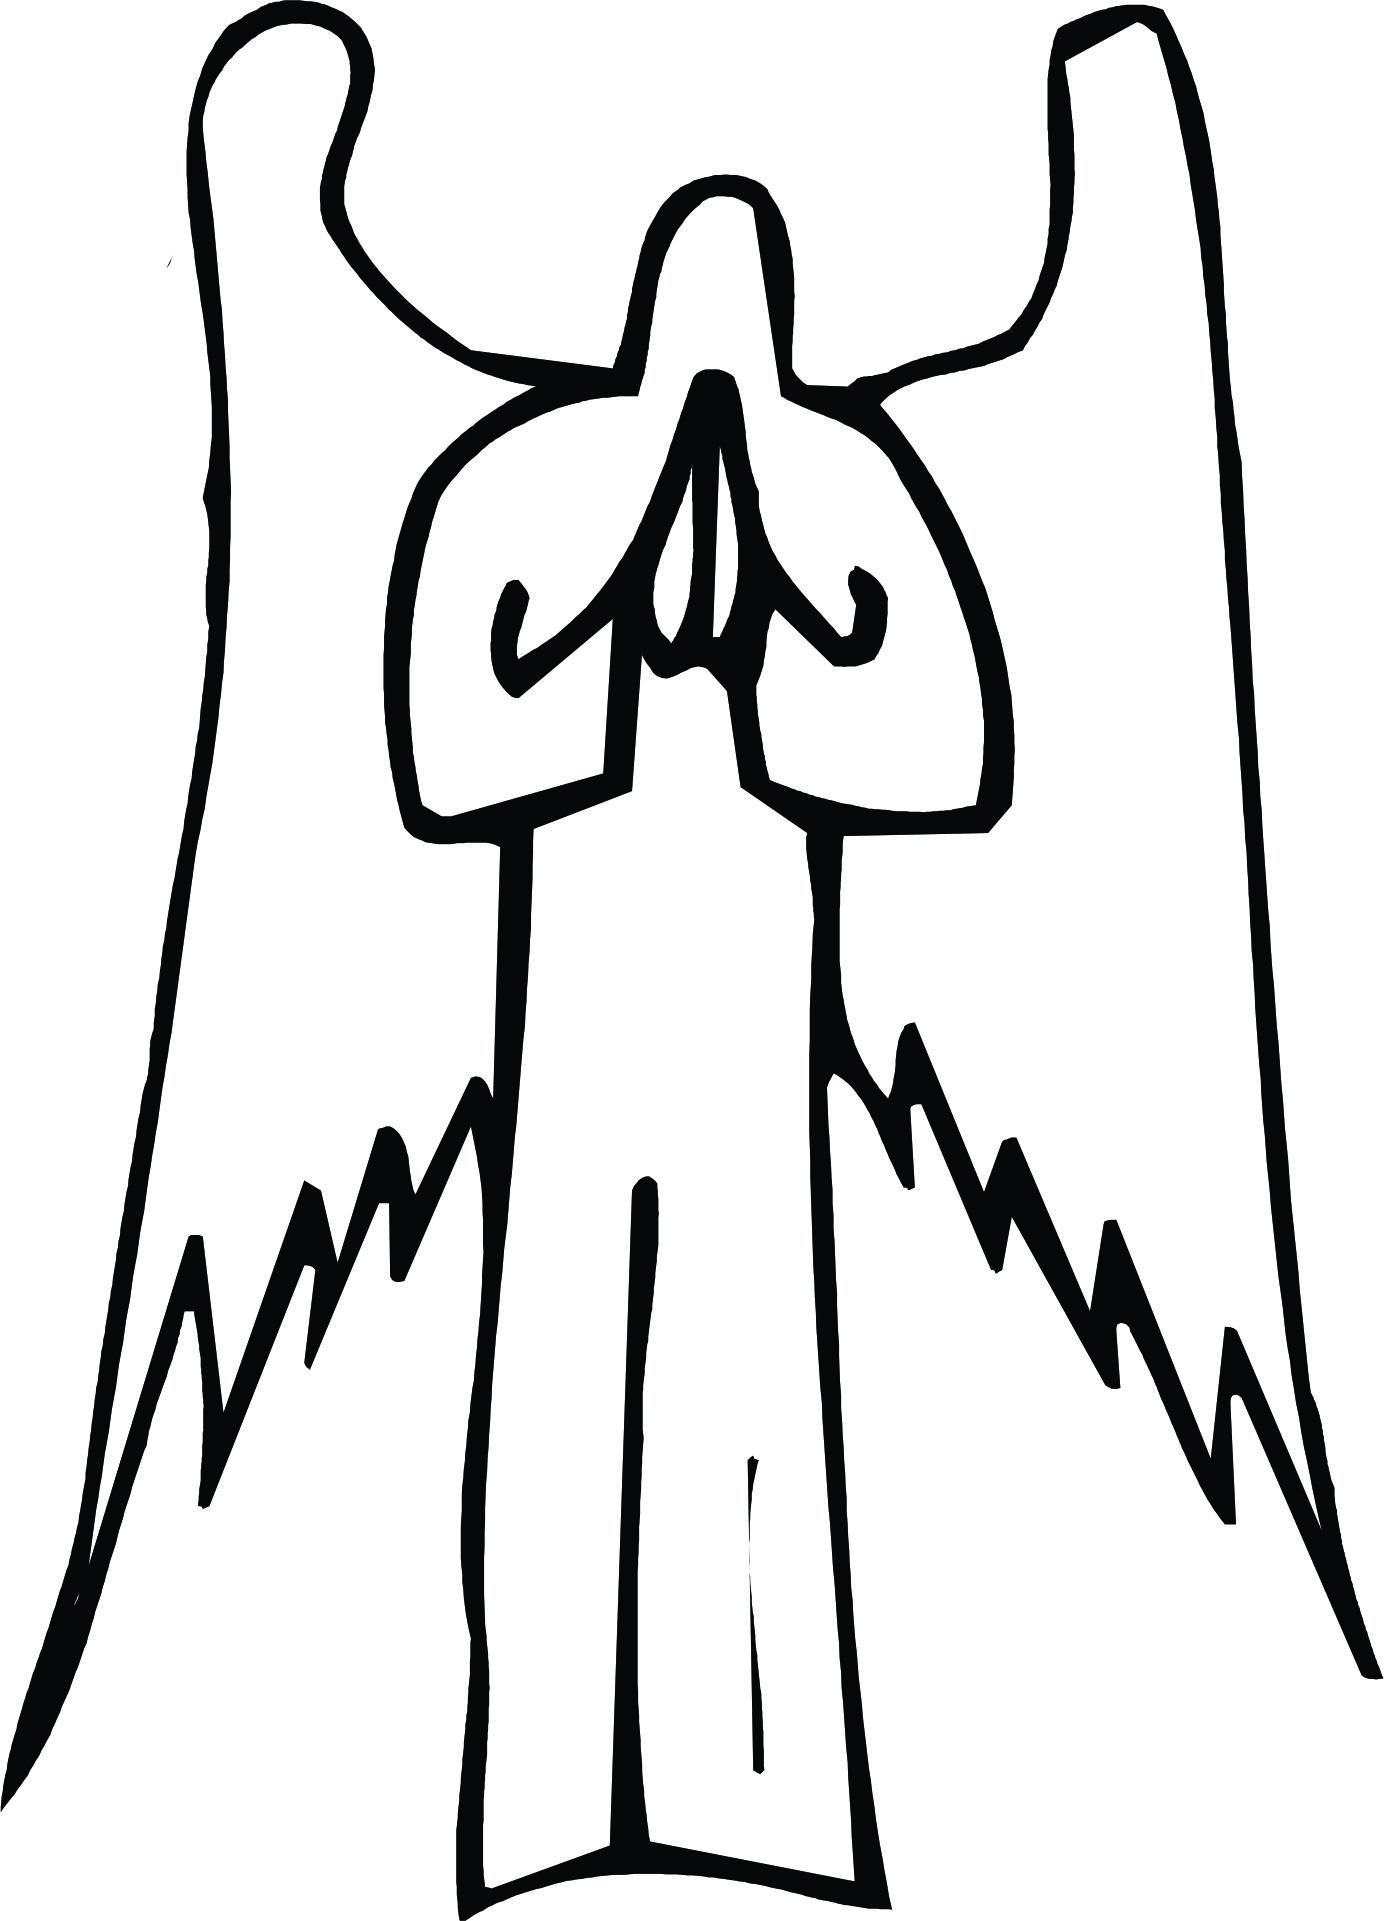 Angel line drawing clipart banner royalty free Free Angel Line Drawing, Download Free Clip Art, Free Clip Art on ... banner royalty free